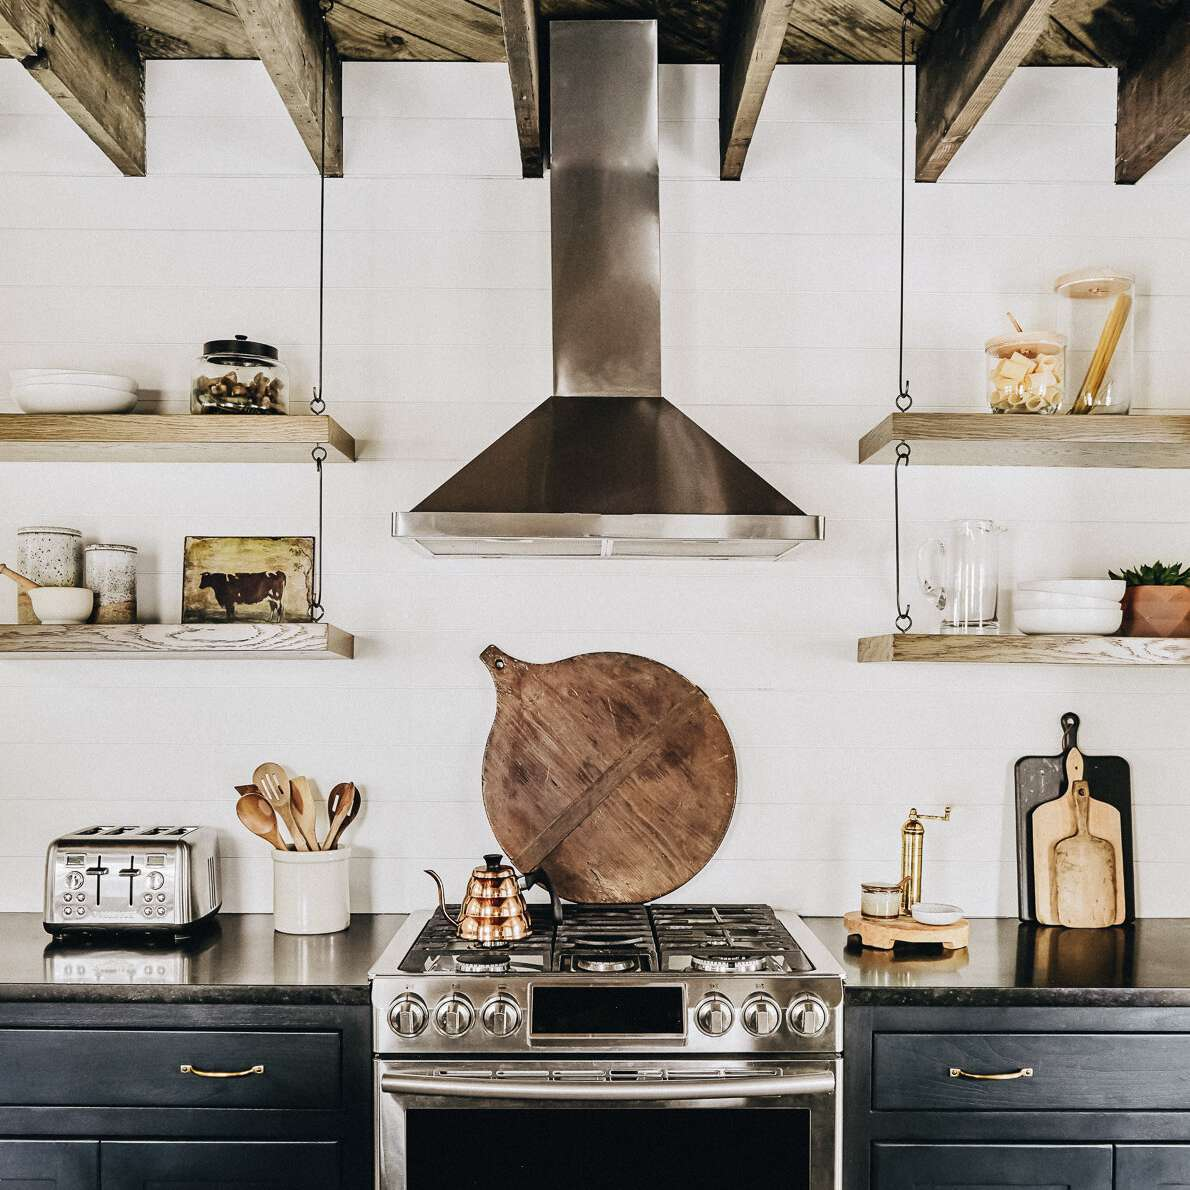 A rustic kitchen with shelves hanging from the ceiling